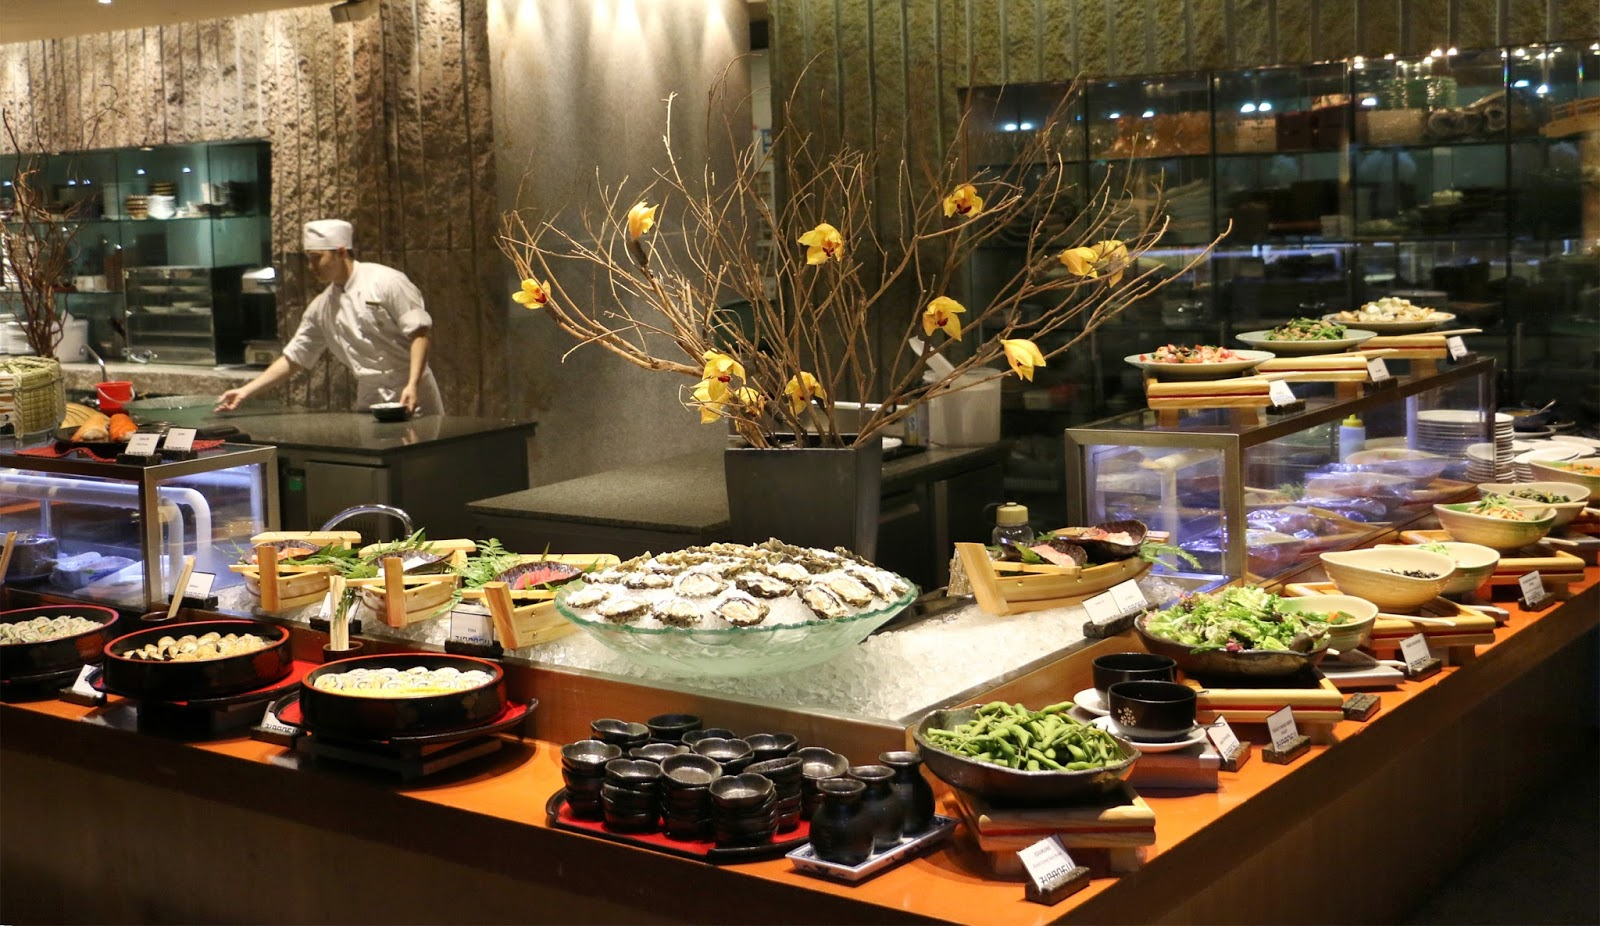 Delhi NCR Restaurants That Provide The Best Dinner Buffet